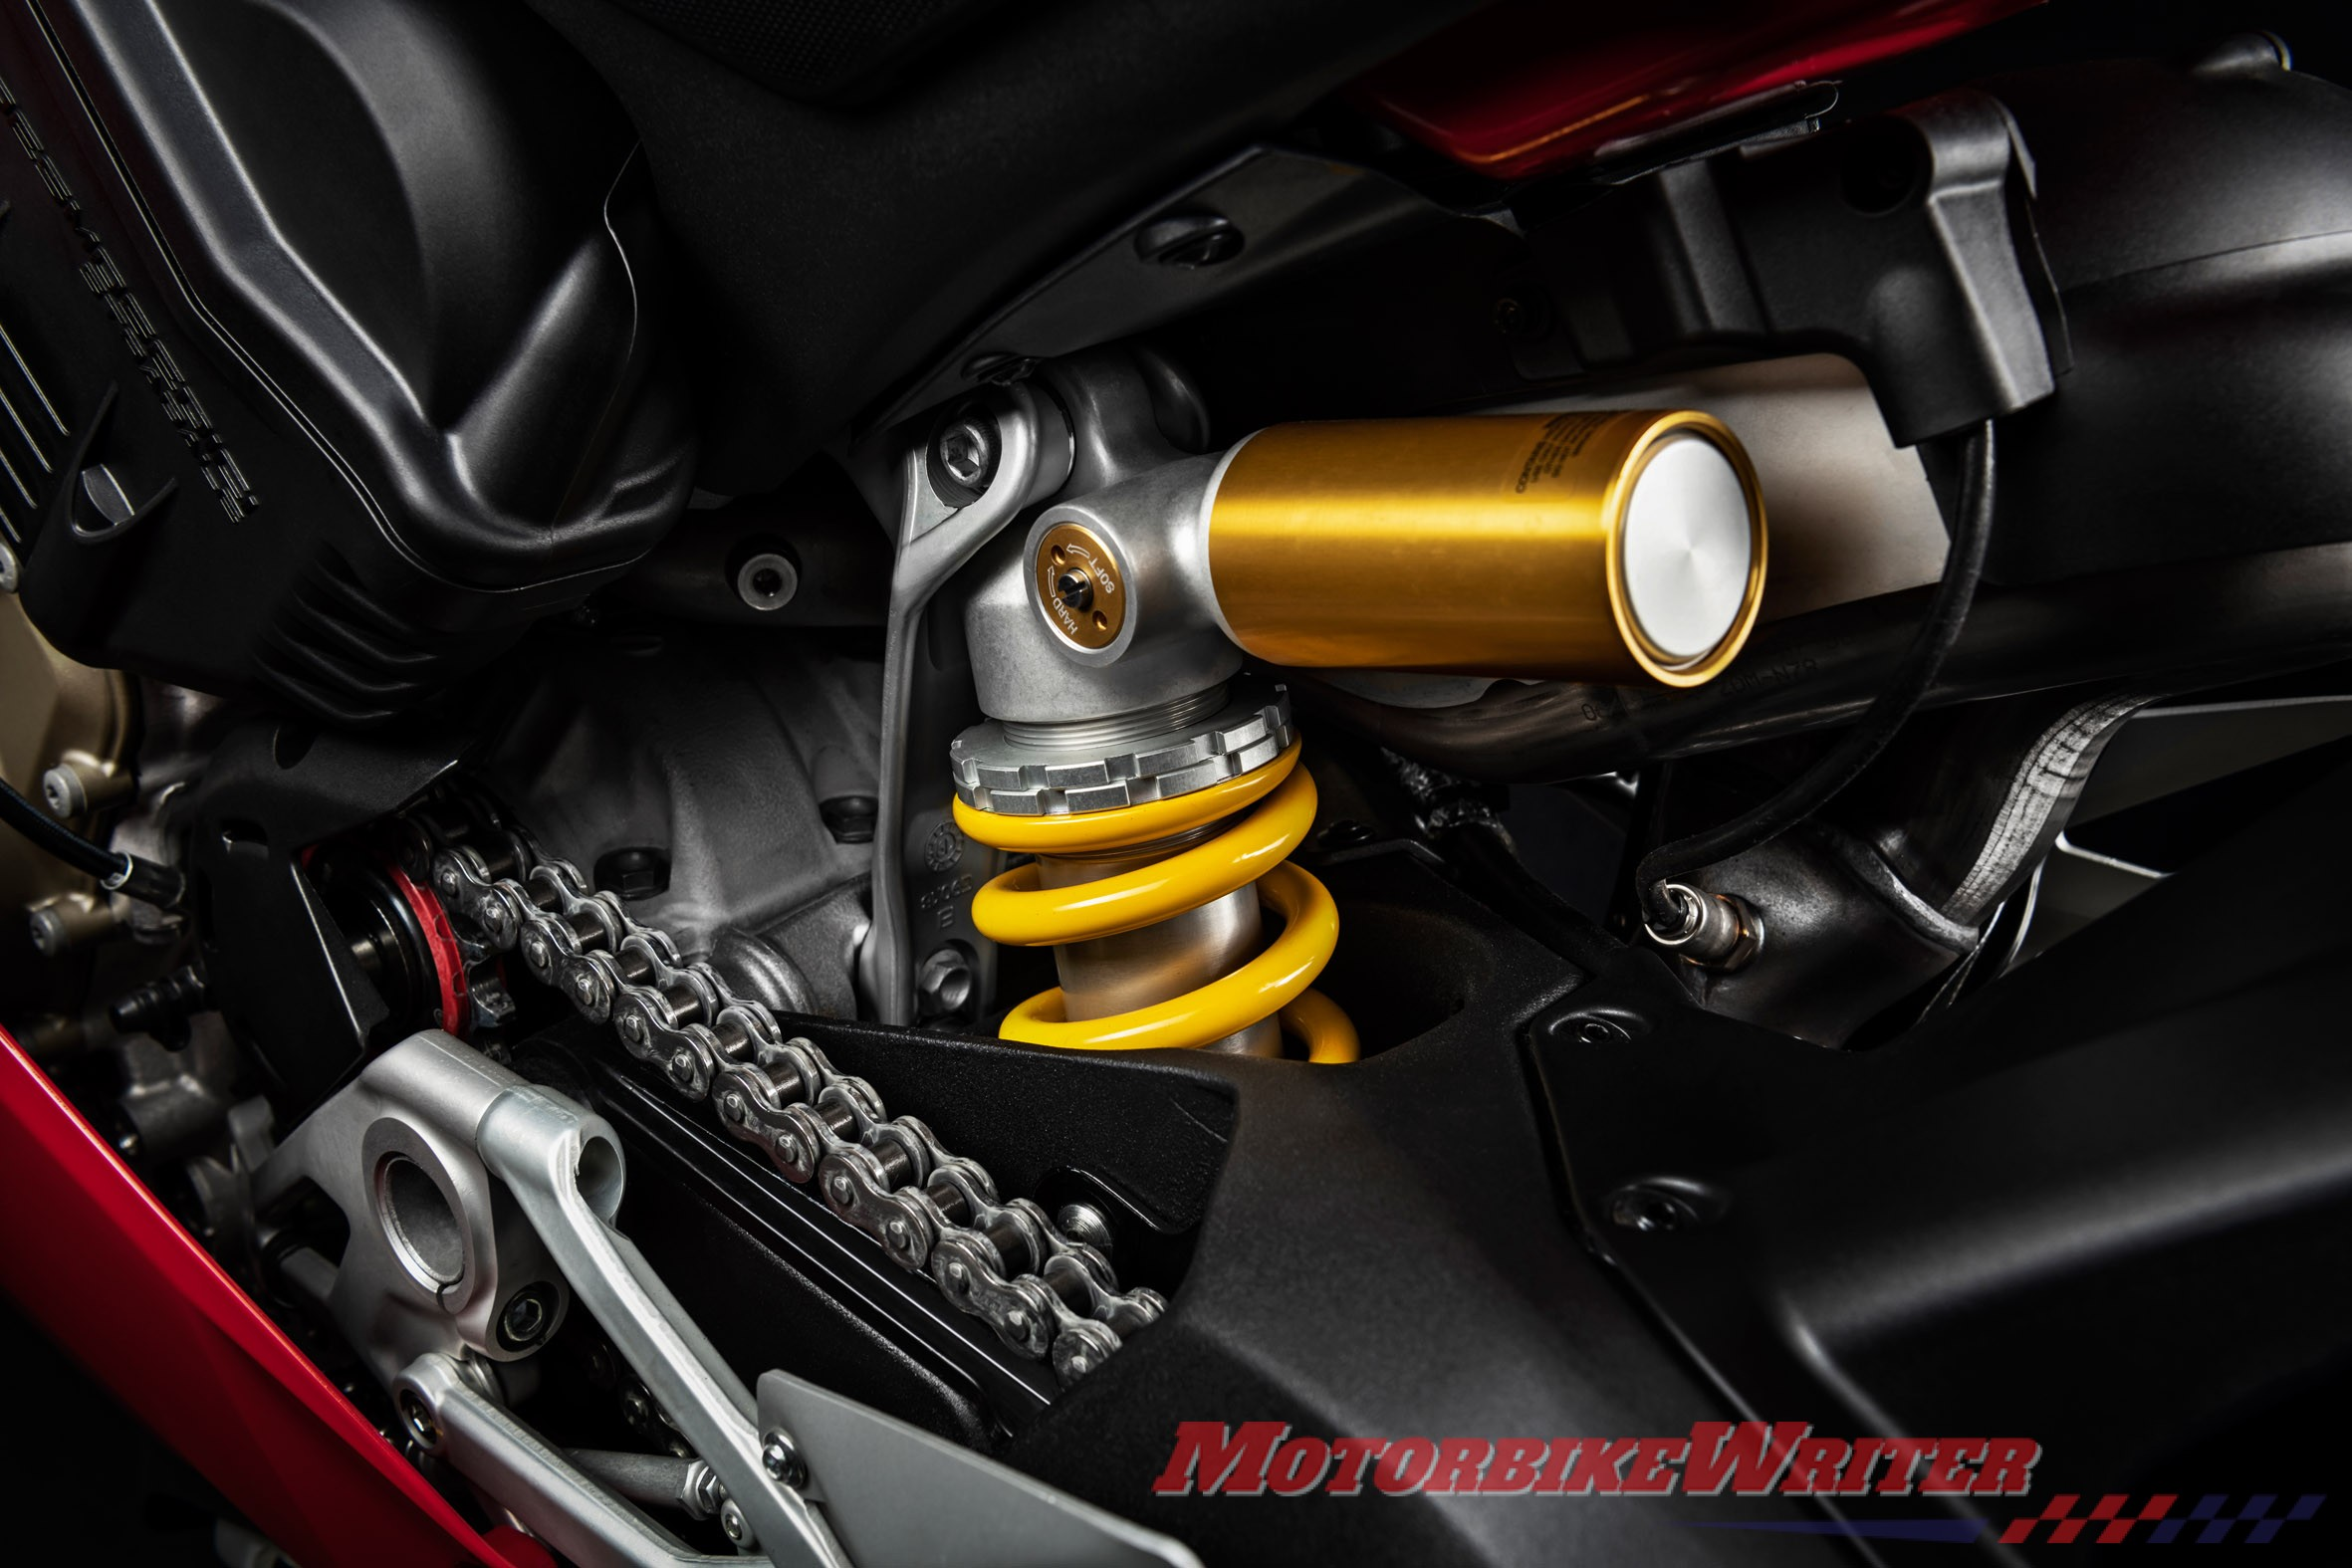 Softer DUCATI PANIGALE V4